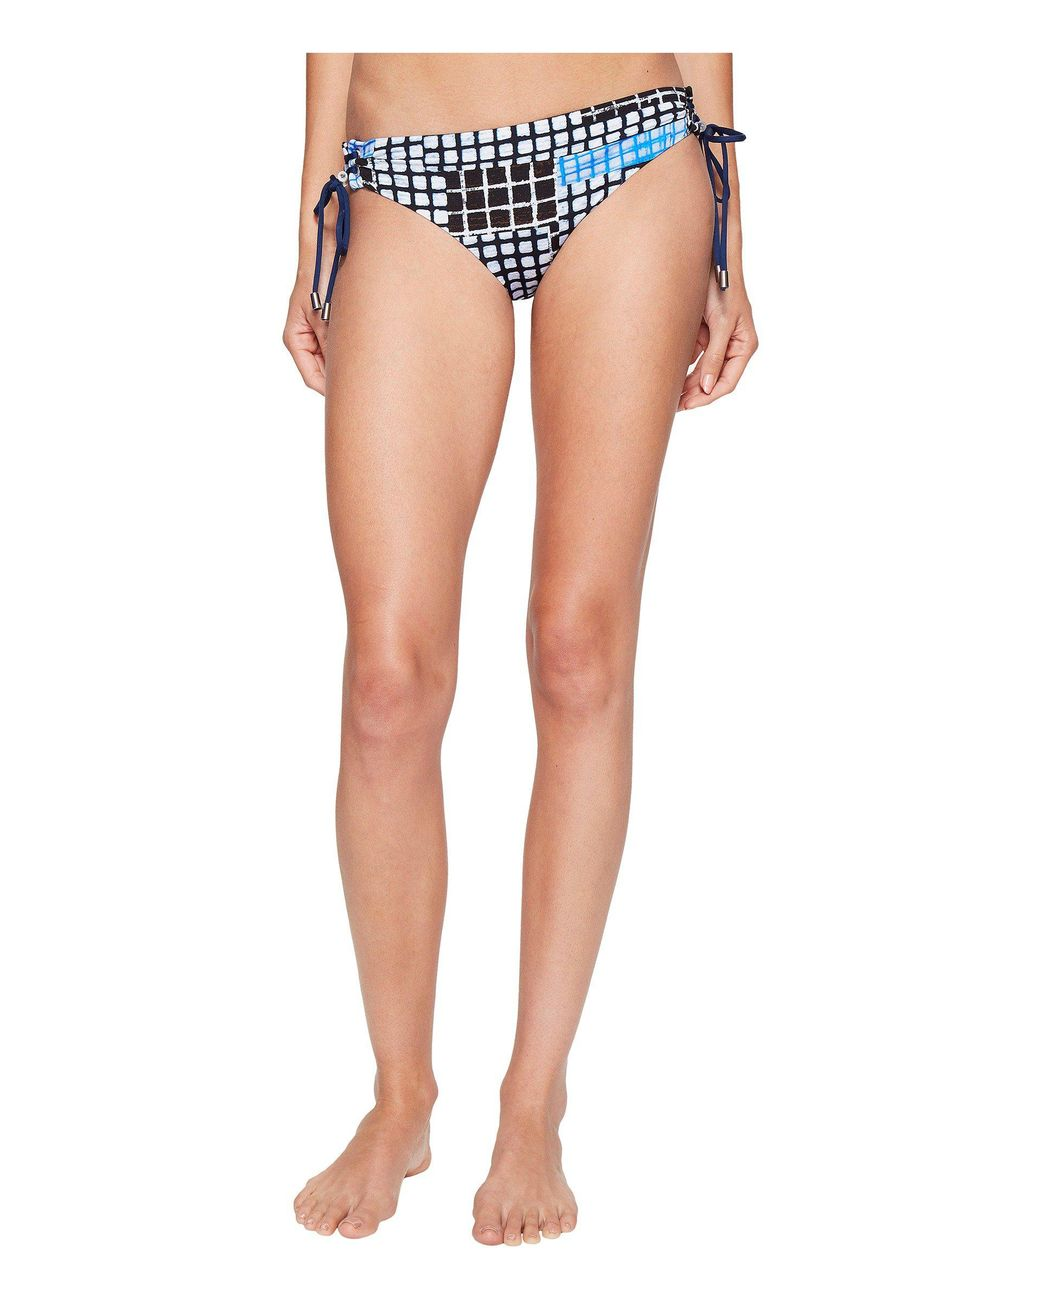 44c8549fafb Lyst - Dolce Vita Gridlock Bottom With Lace-up Sides